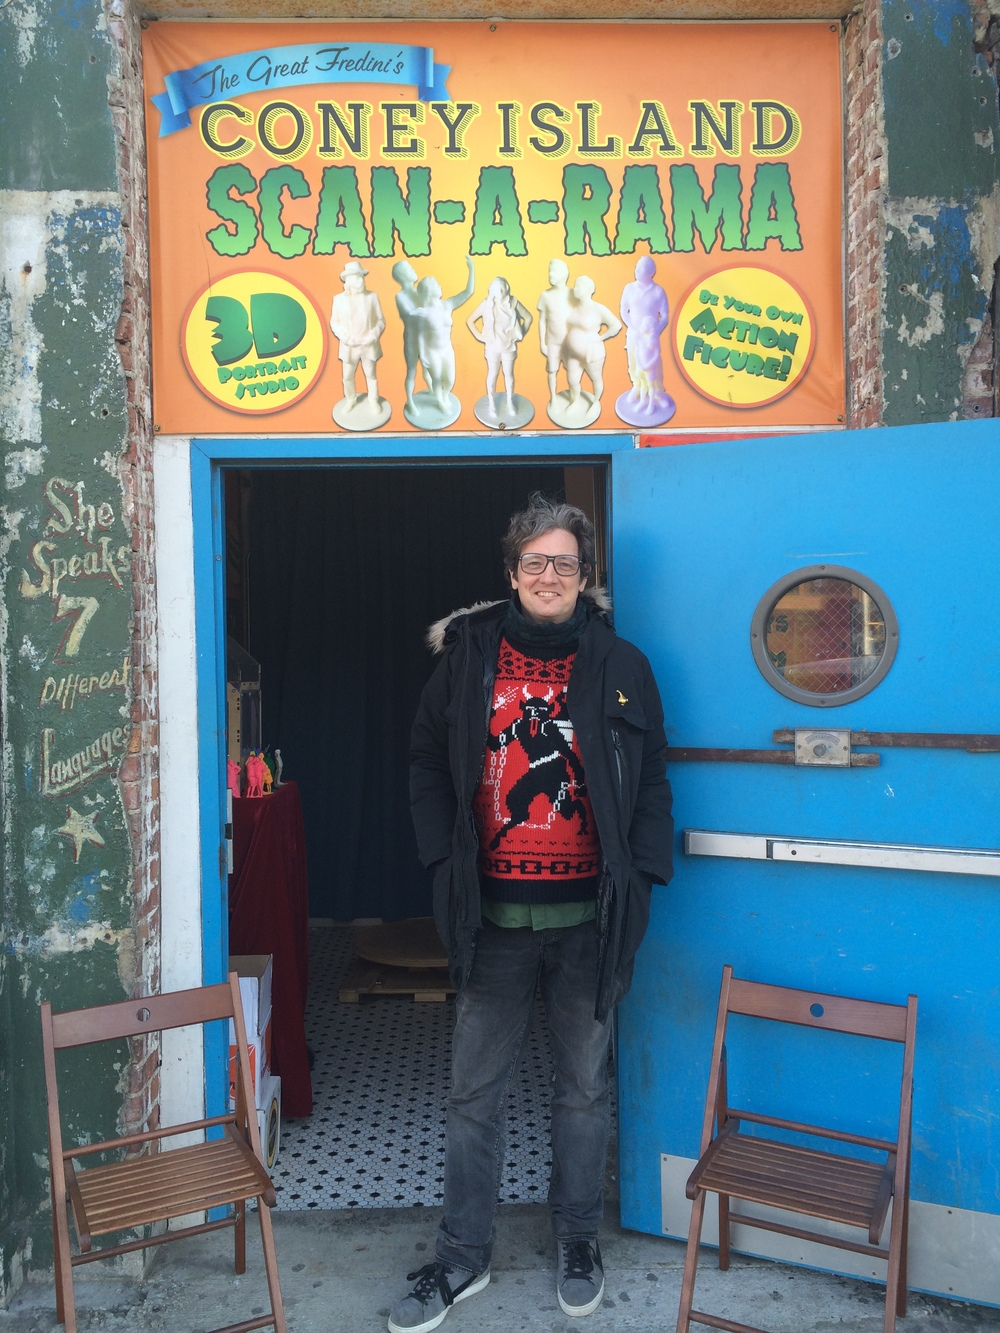 The Great Fredini outside his Scan-A-Rama at 1208 Surf Avenue in Coney Island. Picture by Legs Malone.